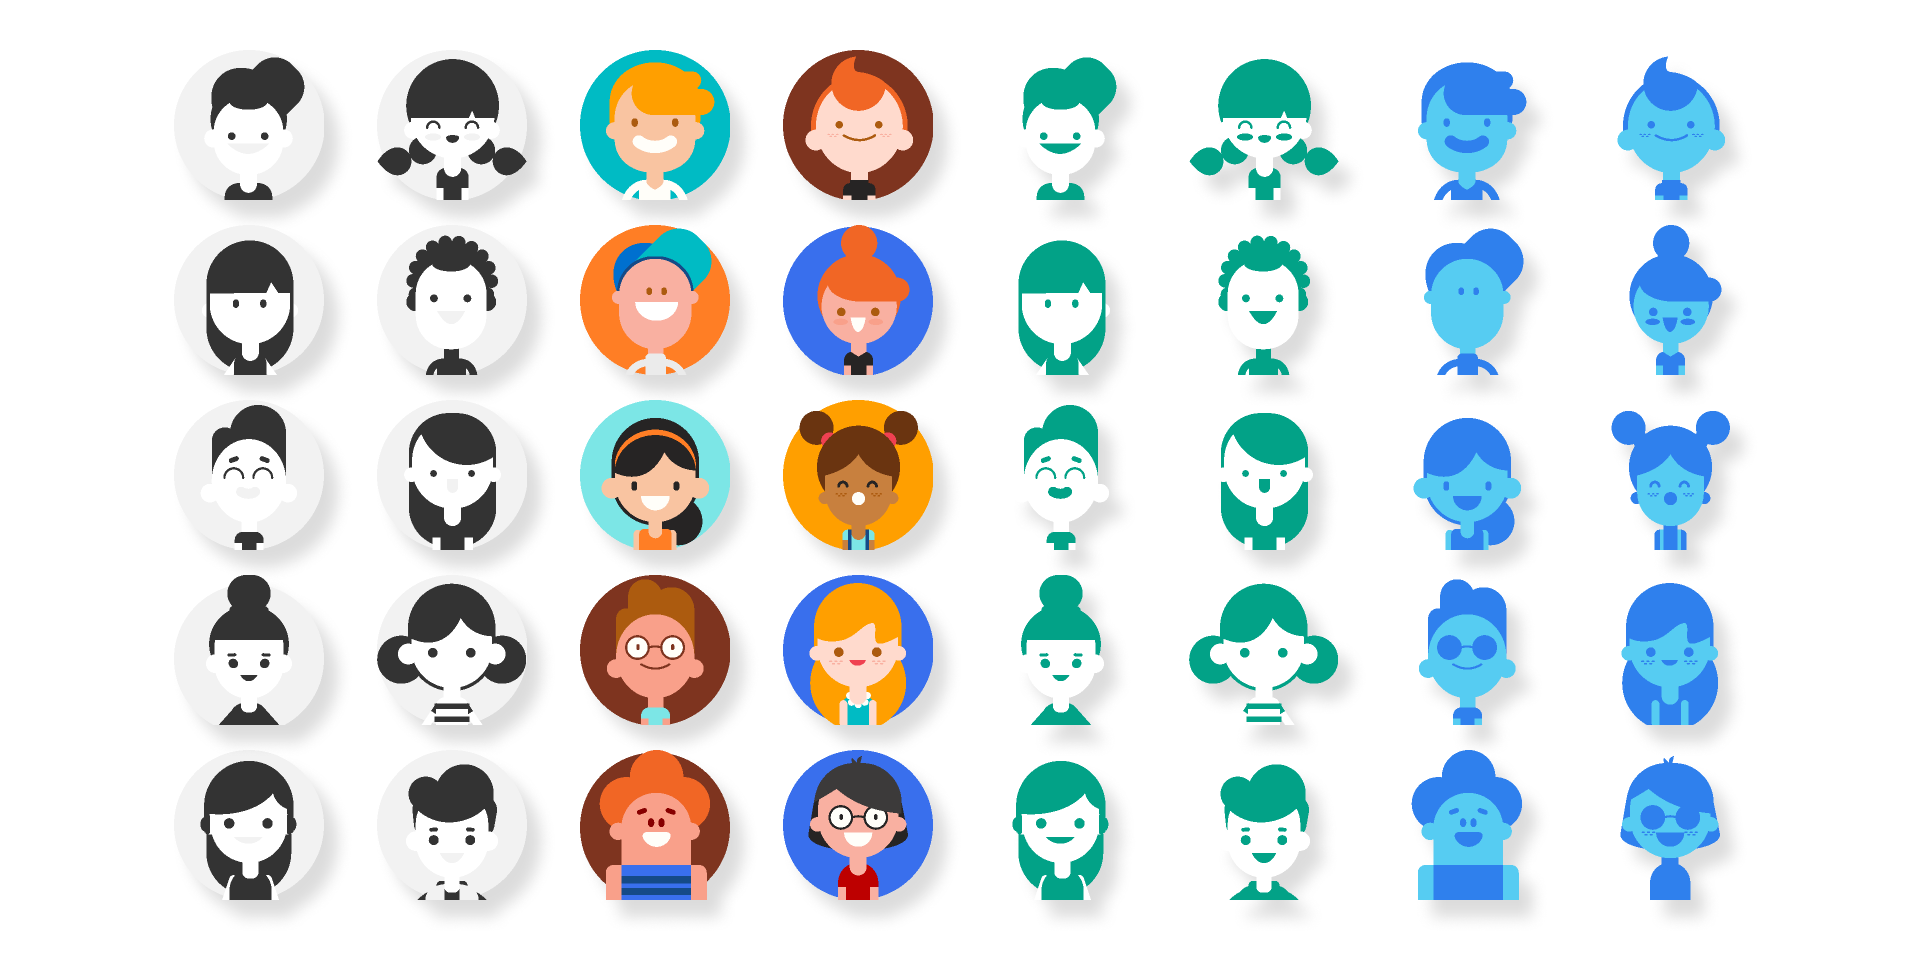 Figma SVG User Avatar Pack Free download